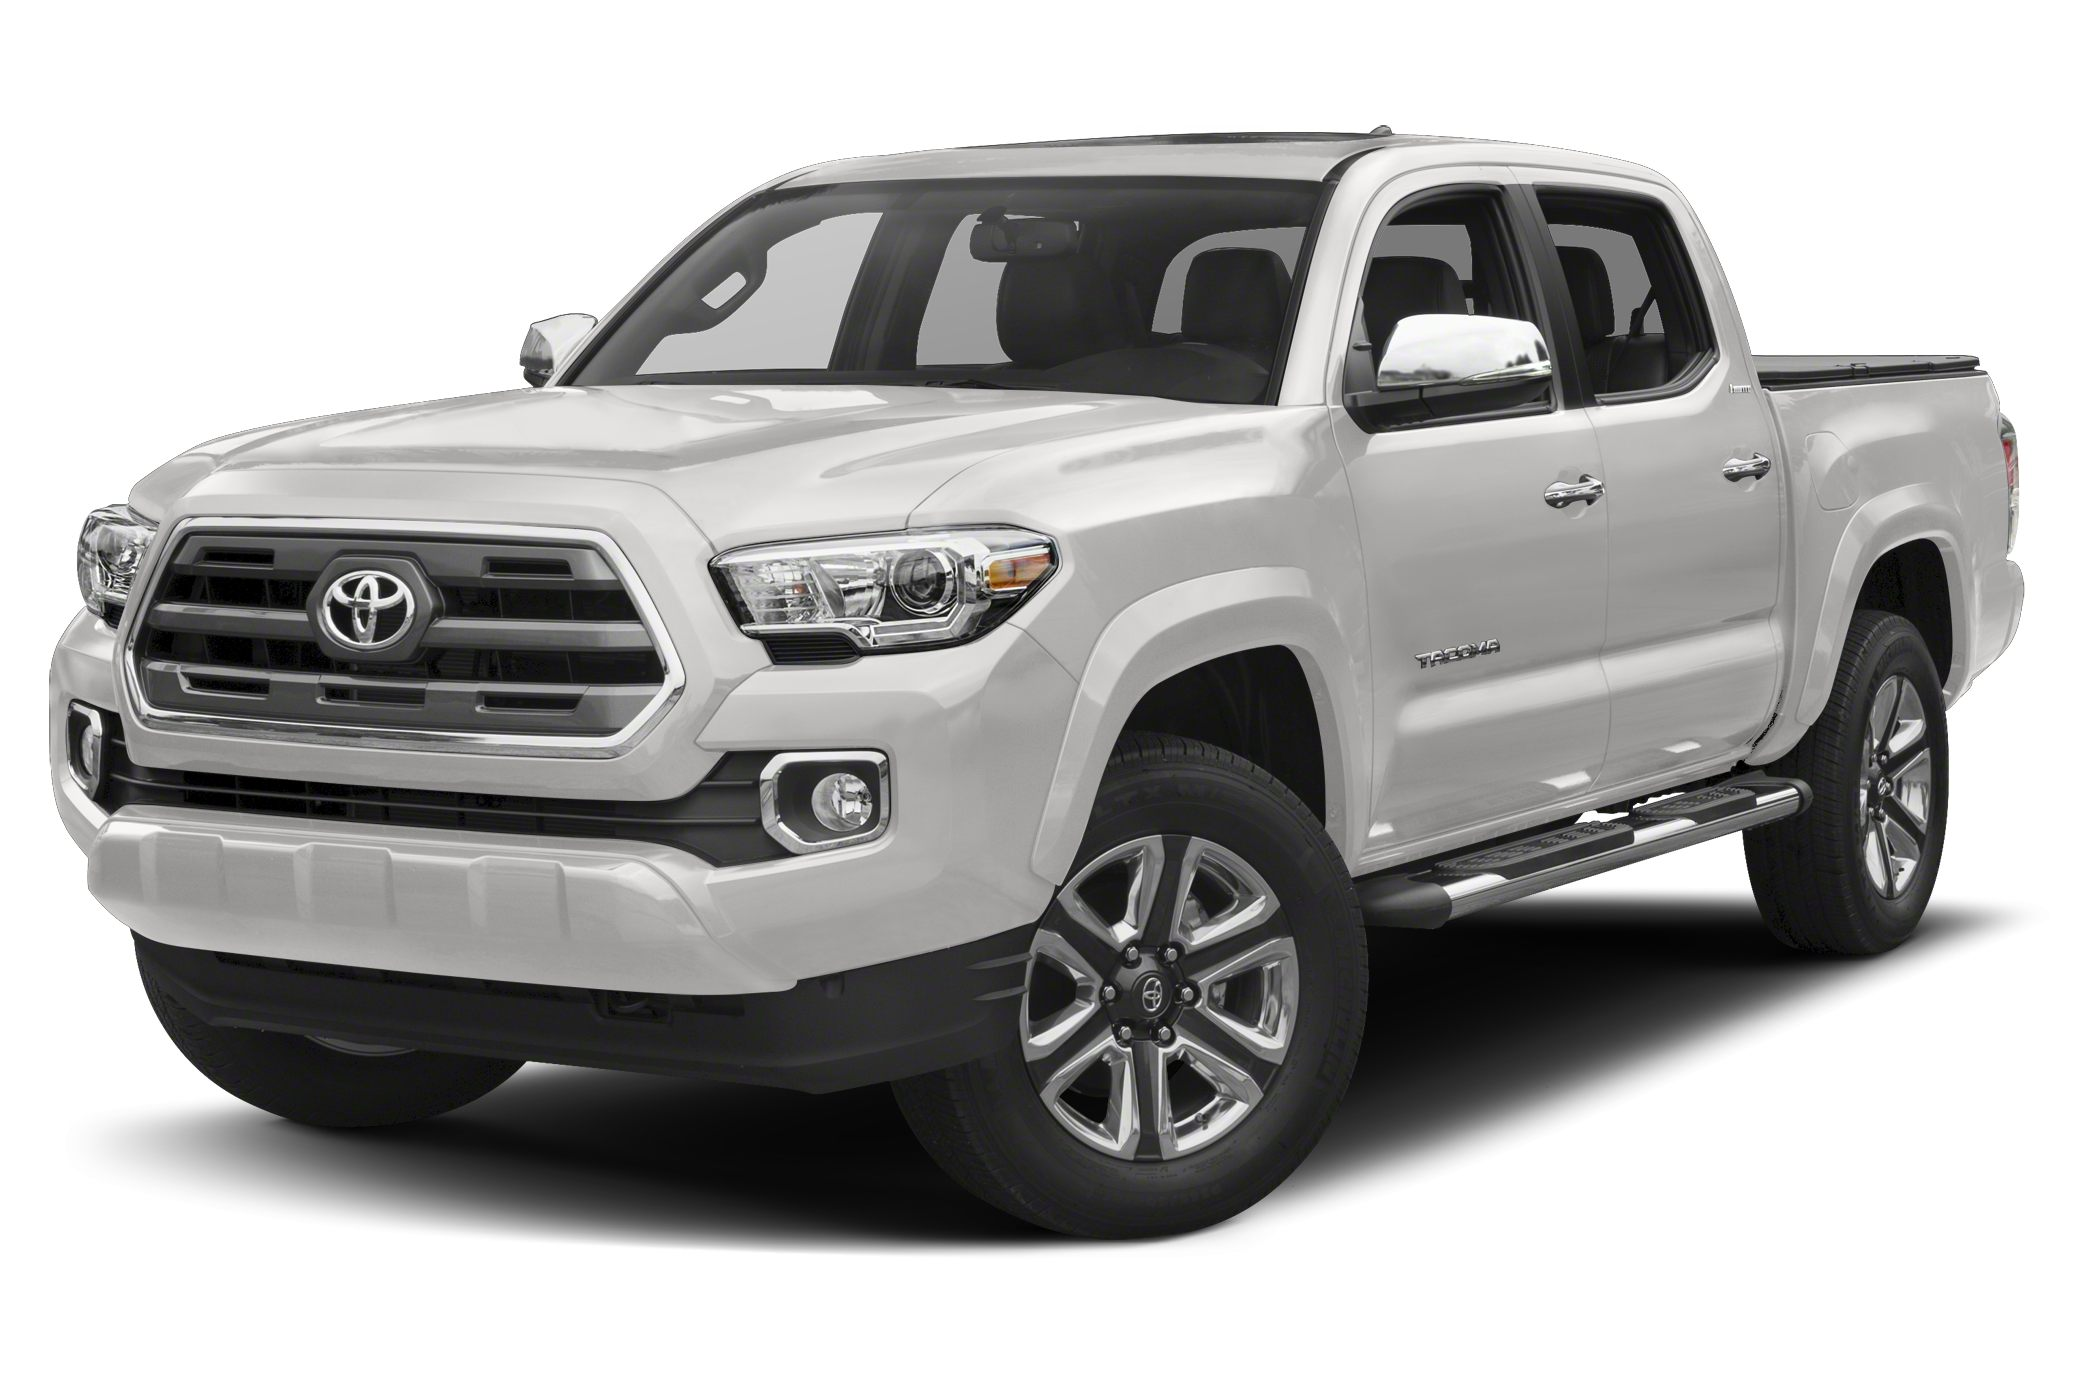 Toyota Tacoma Dimensions >> 2017 Toyota Tacoma Limited V6 4x4 Double Cab 127 4 In Wb Specs And Prices